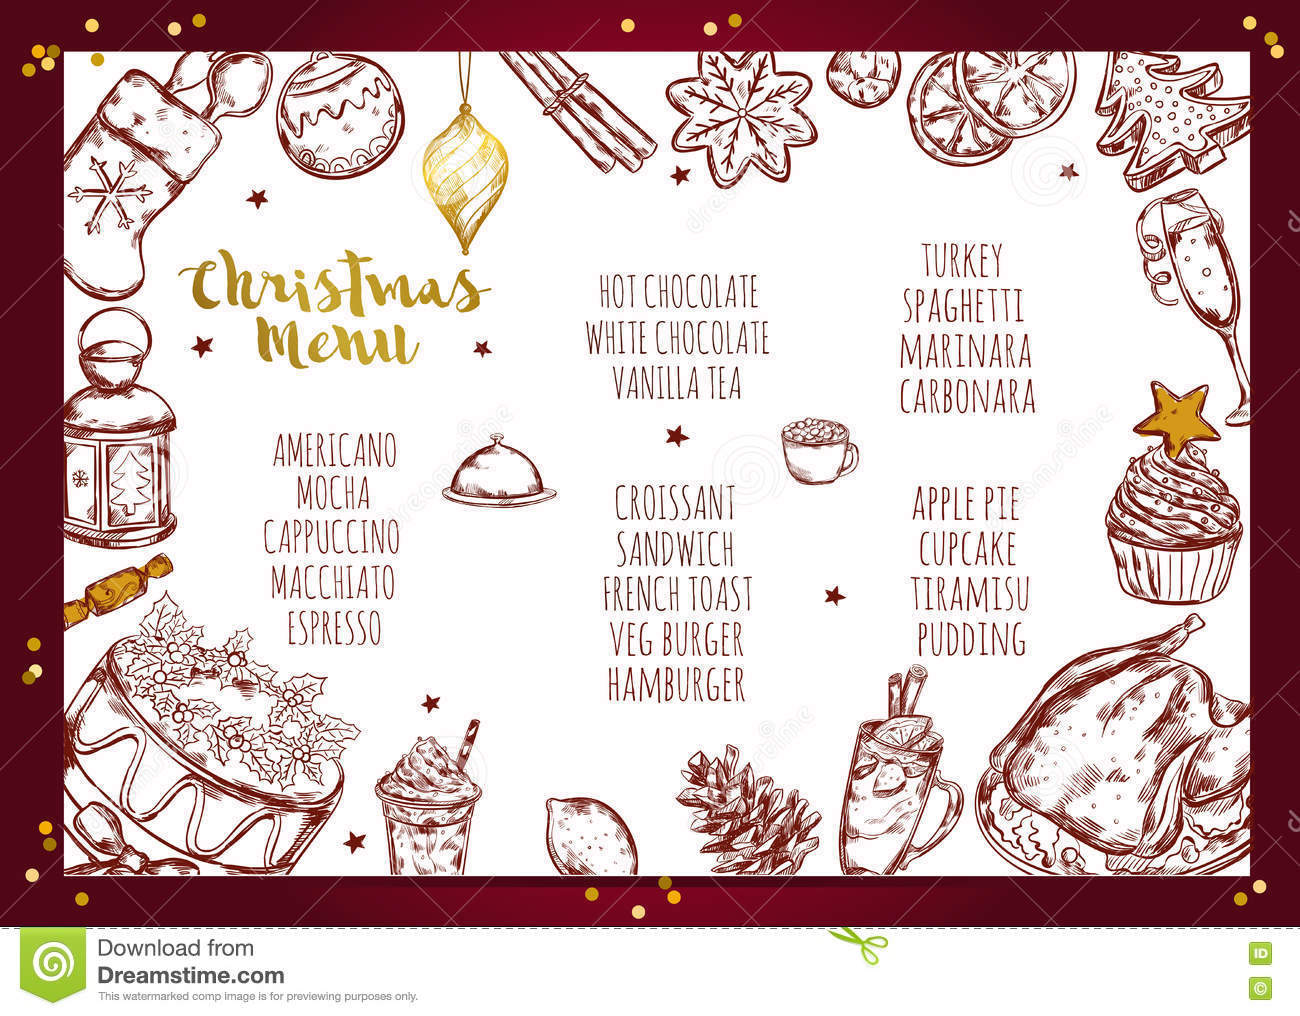 Christmas Menu Brochure Design